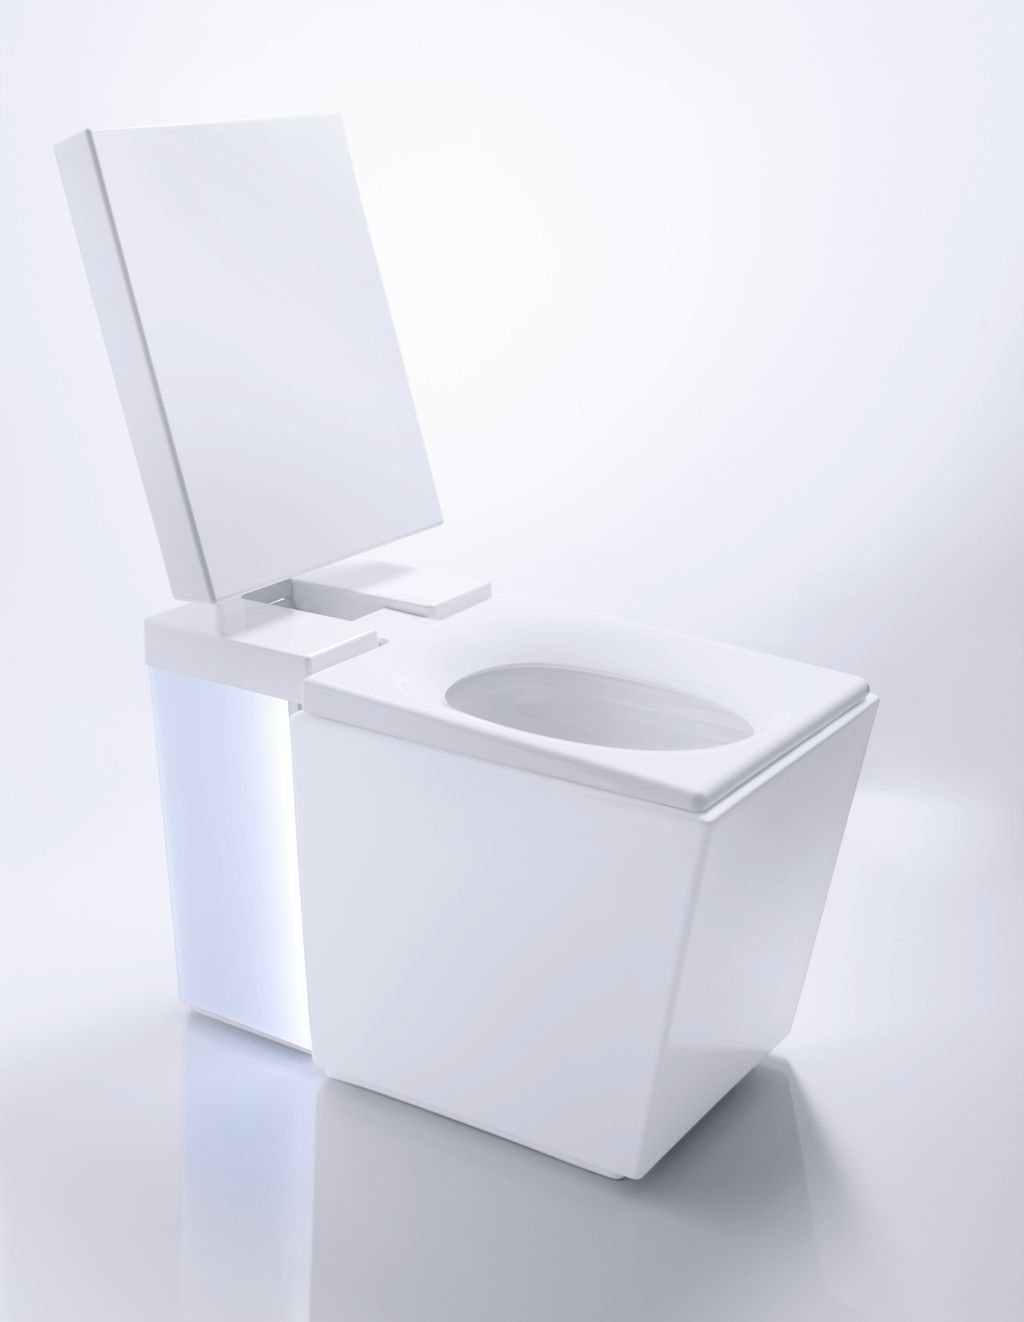 Outstanding Kohlers Most Advanced Toilet Yet Numi Features Motion Machost Co Dining Chair Design Ideas Machostcouk